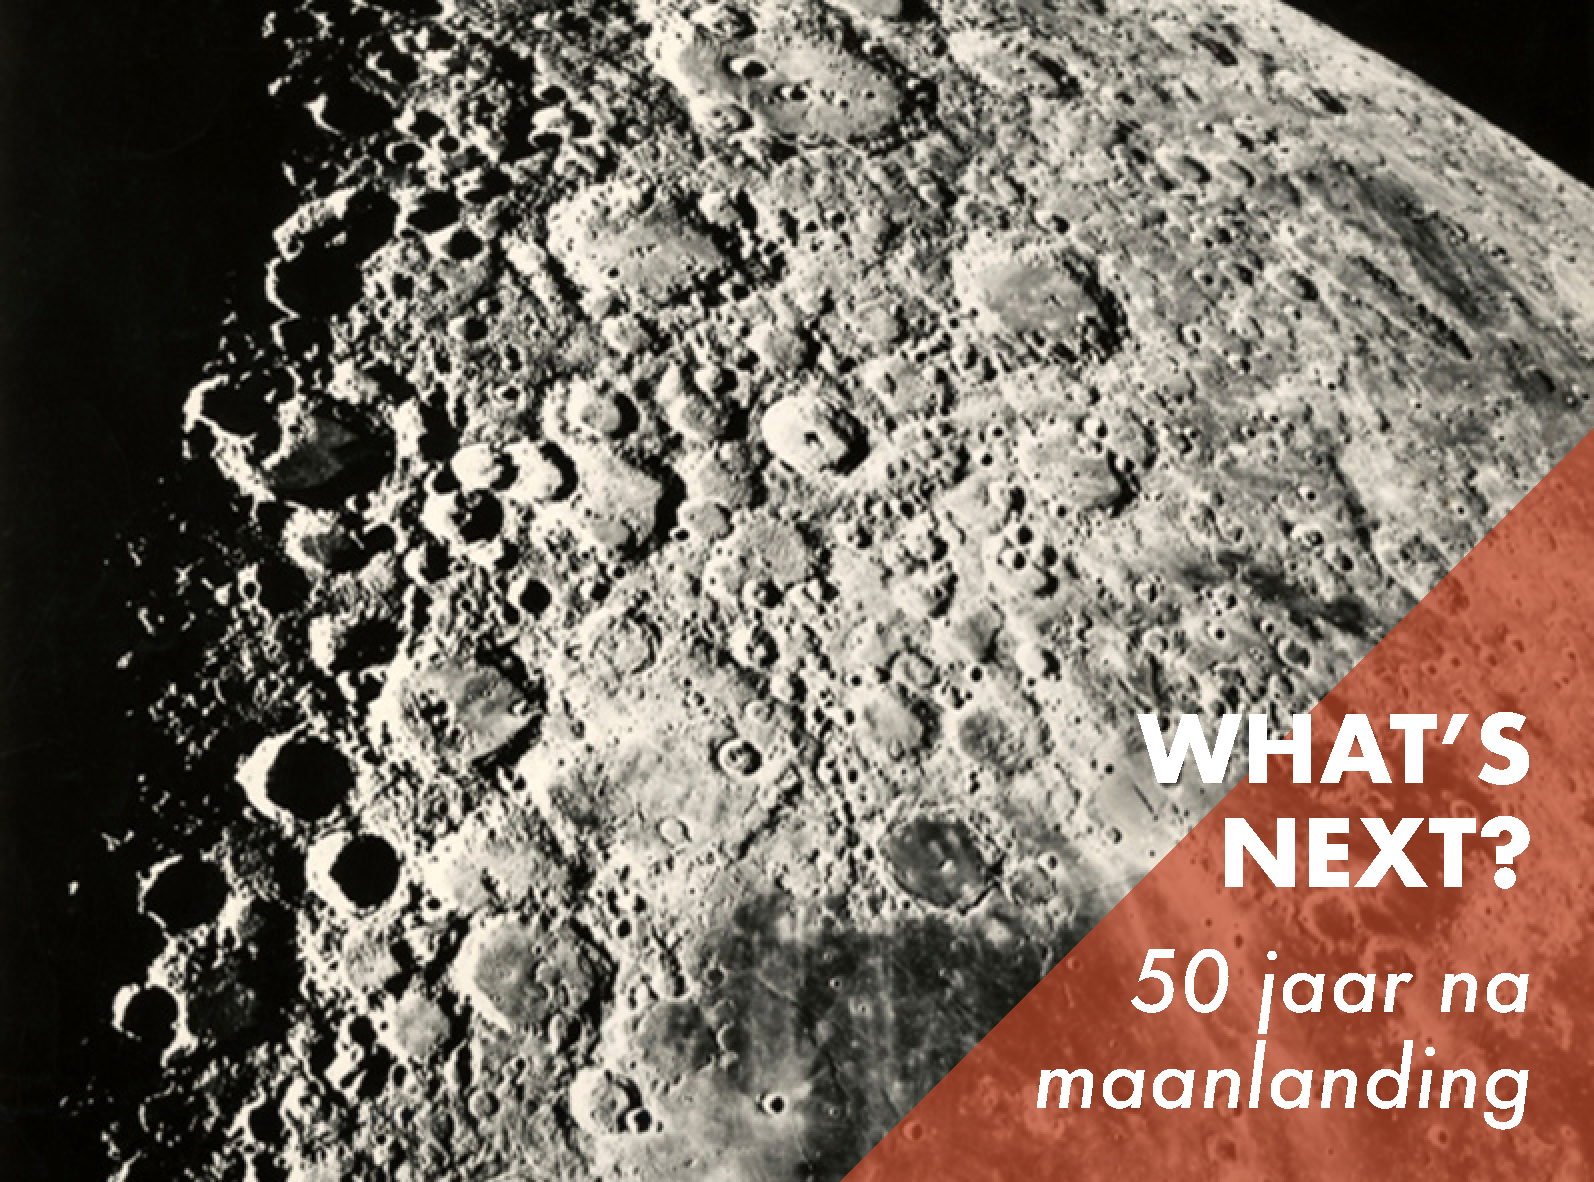 Een overzicht van alles rondom ruimtereizen, de maanlanding (1969) en vroege science fiction ideeën.   50 years after landing on the moon, what's next?:   A selection of all kinds of subjects related to space travel, the landing on the moon (1969) and early ideas about science fiction.   See more